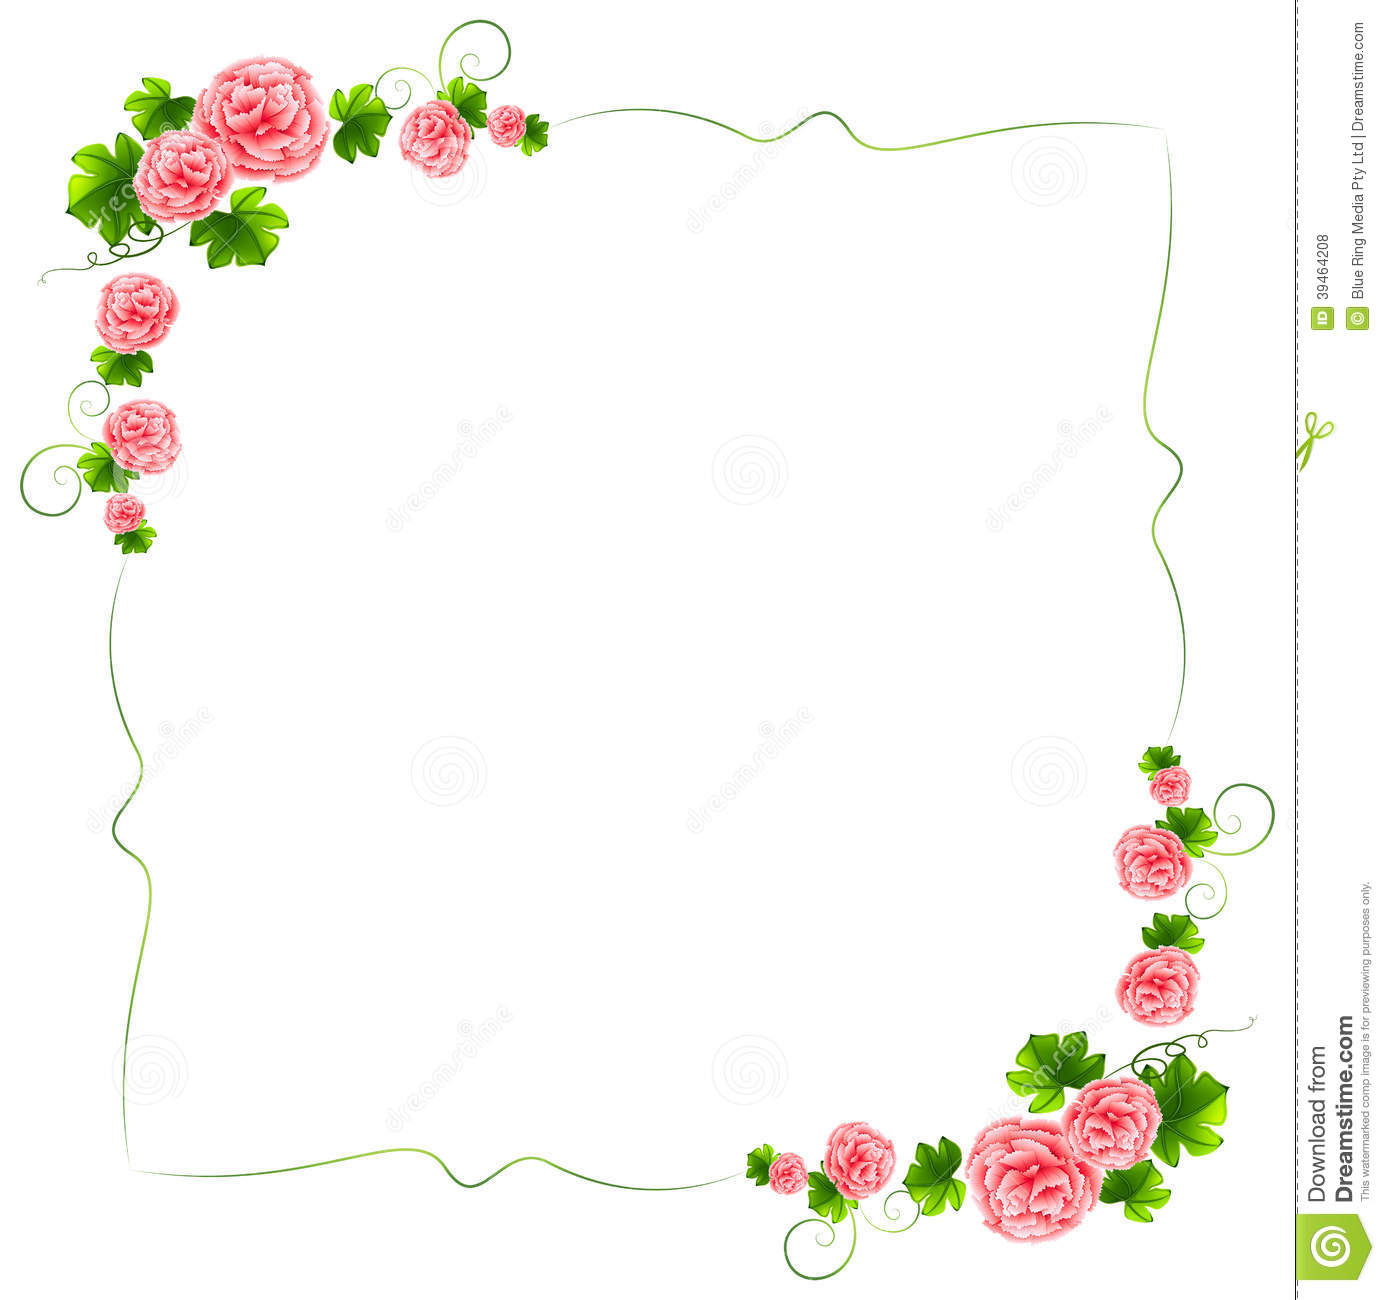 A Border With Carnation Pink Flowers Stock Vector